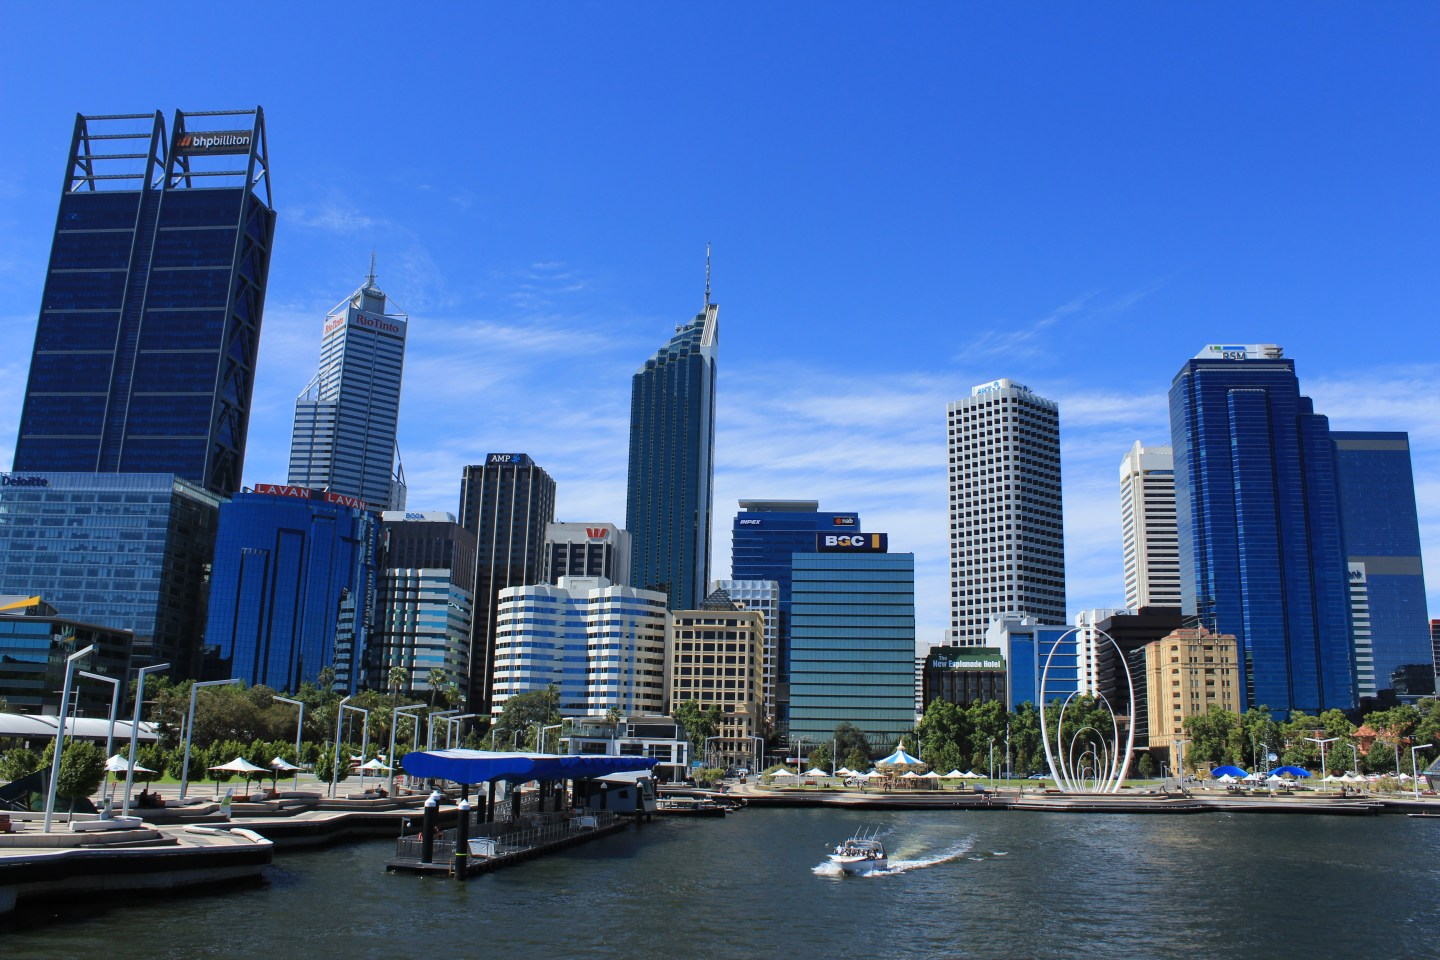 View of skyscrapers and a harbour in Perth